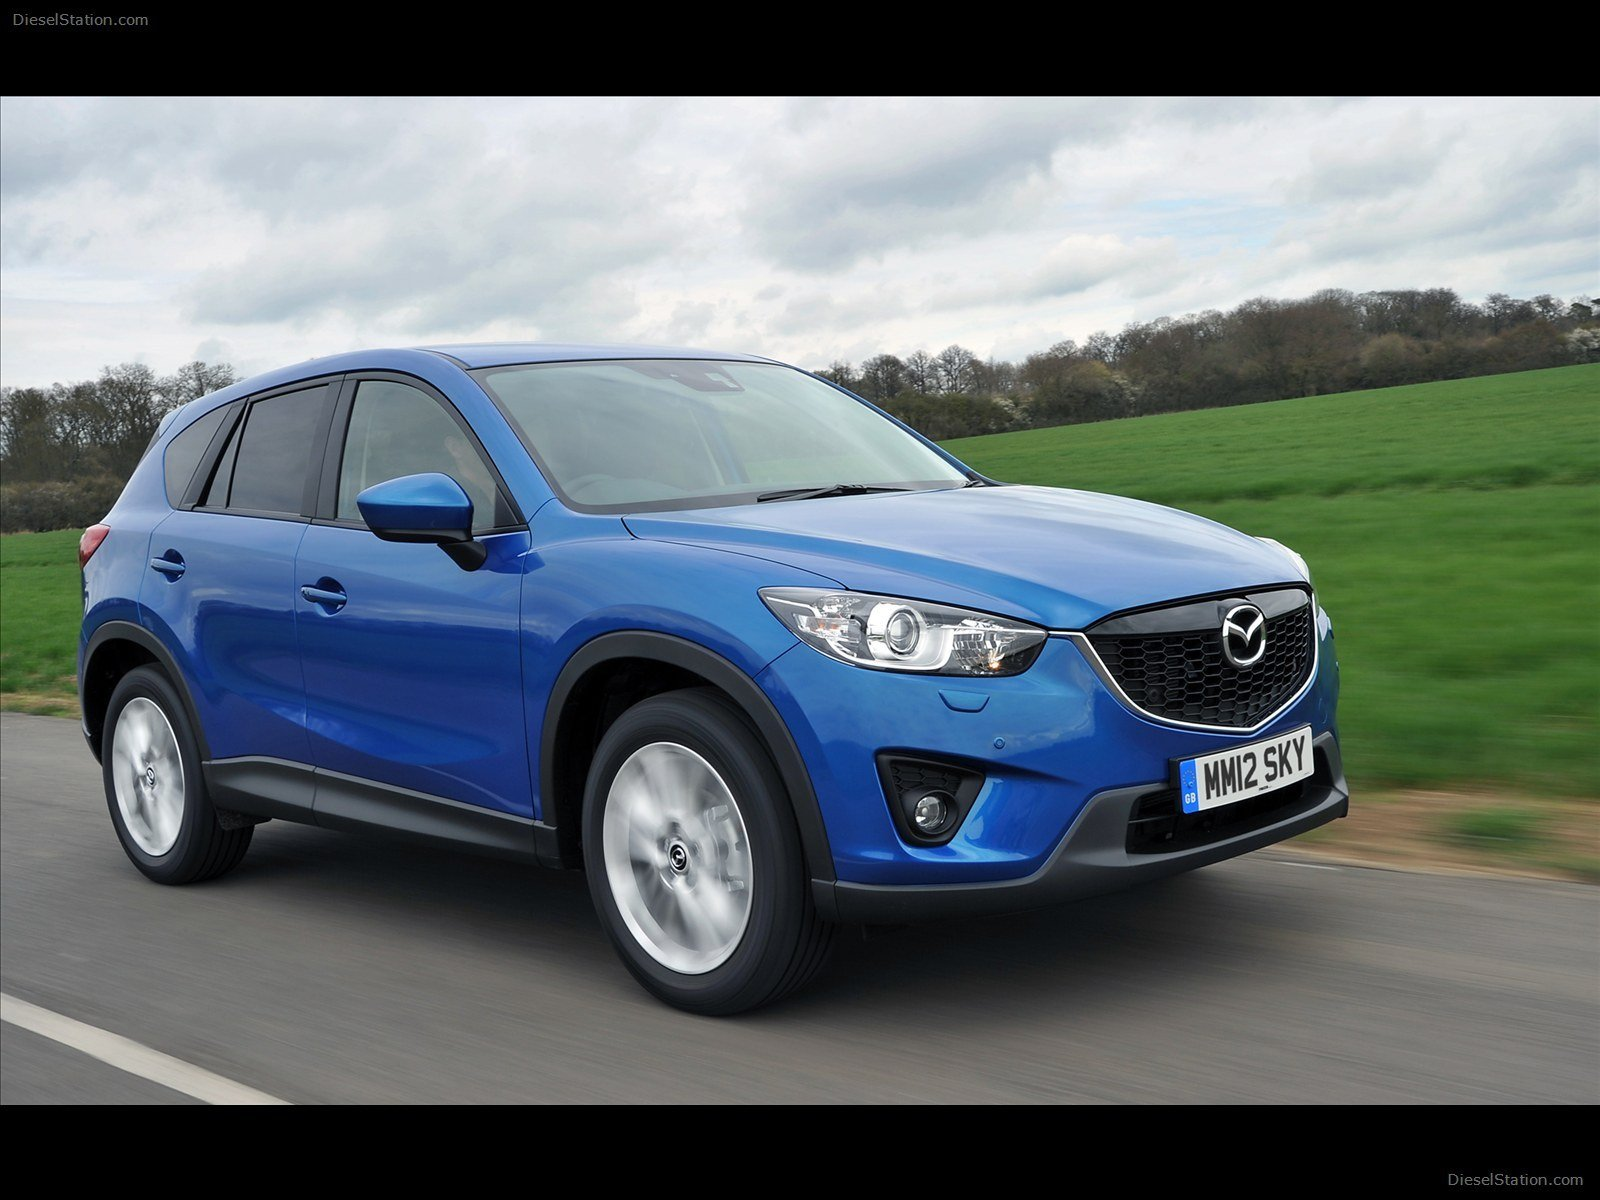 Latest Mazda Cx 5 1680X1050 Hq Images Mazda Car Wallpapers Free Download